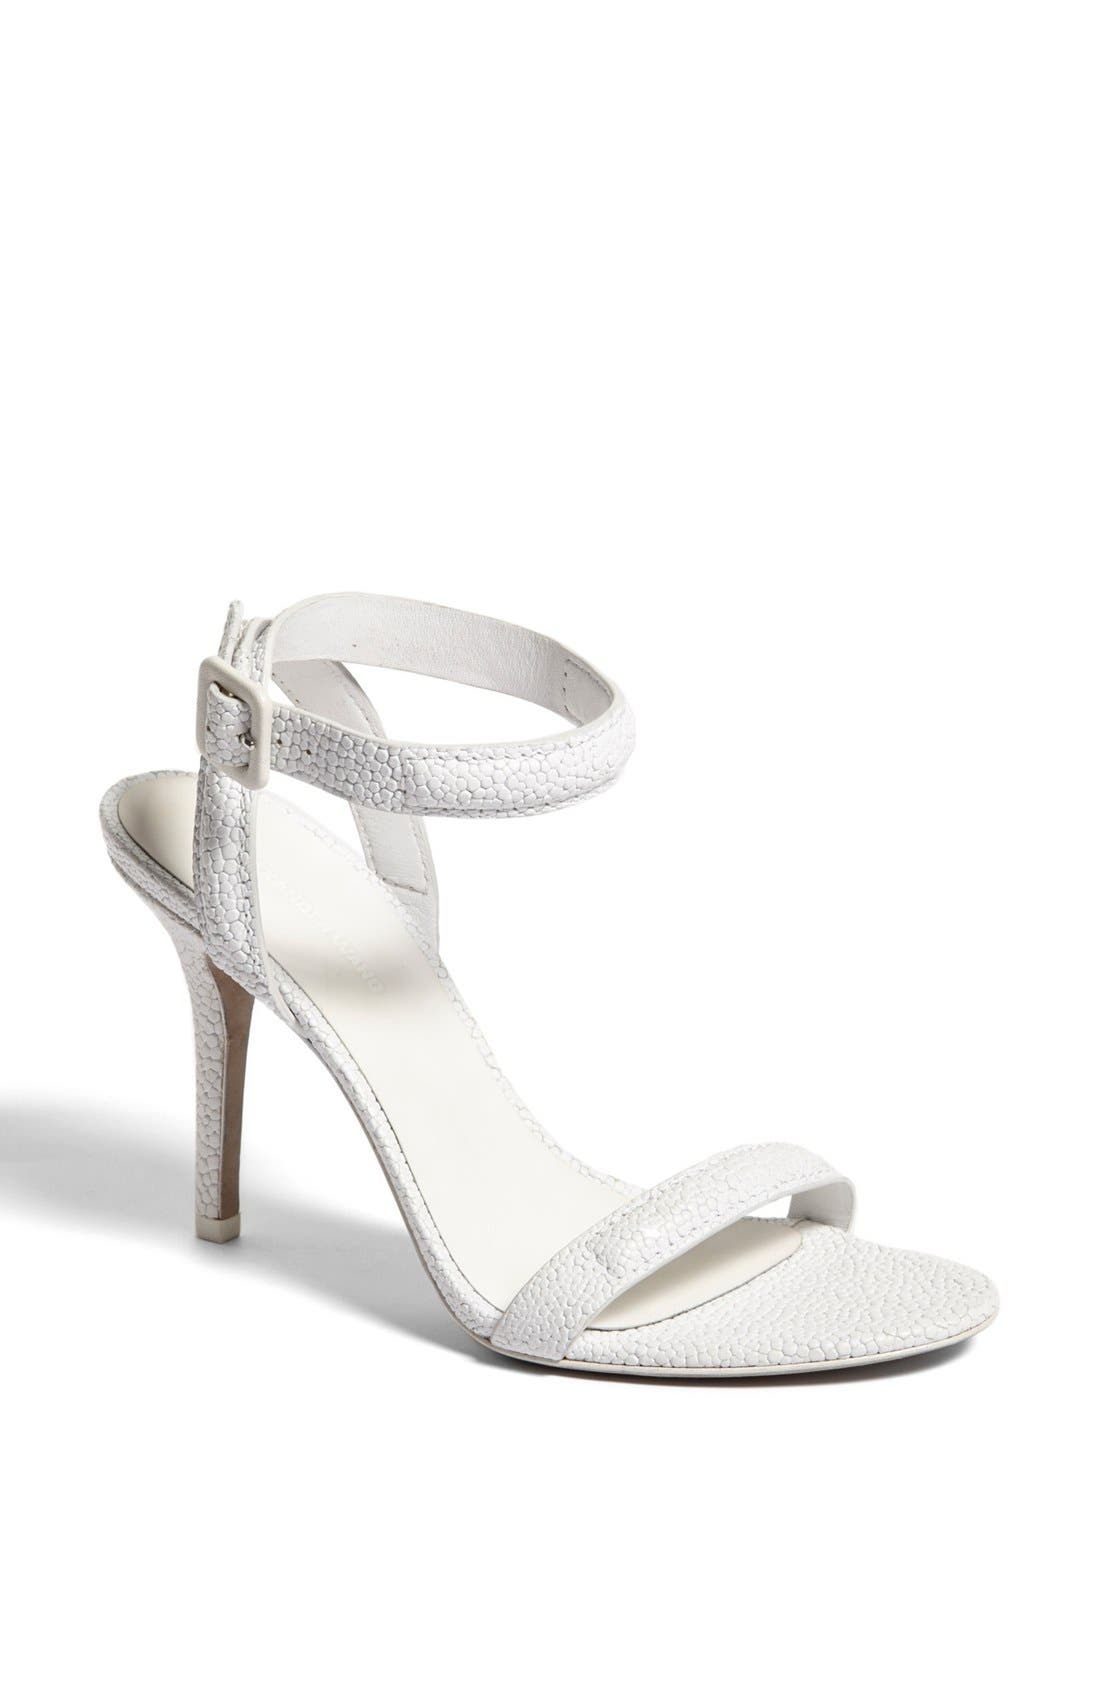 Alternate Image 1 Selected - Alexander Wang 'Antonia' Ankle Strap Sandal